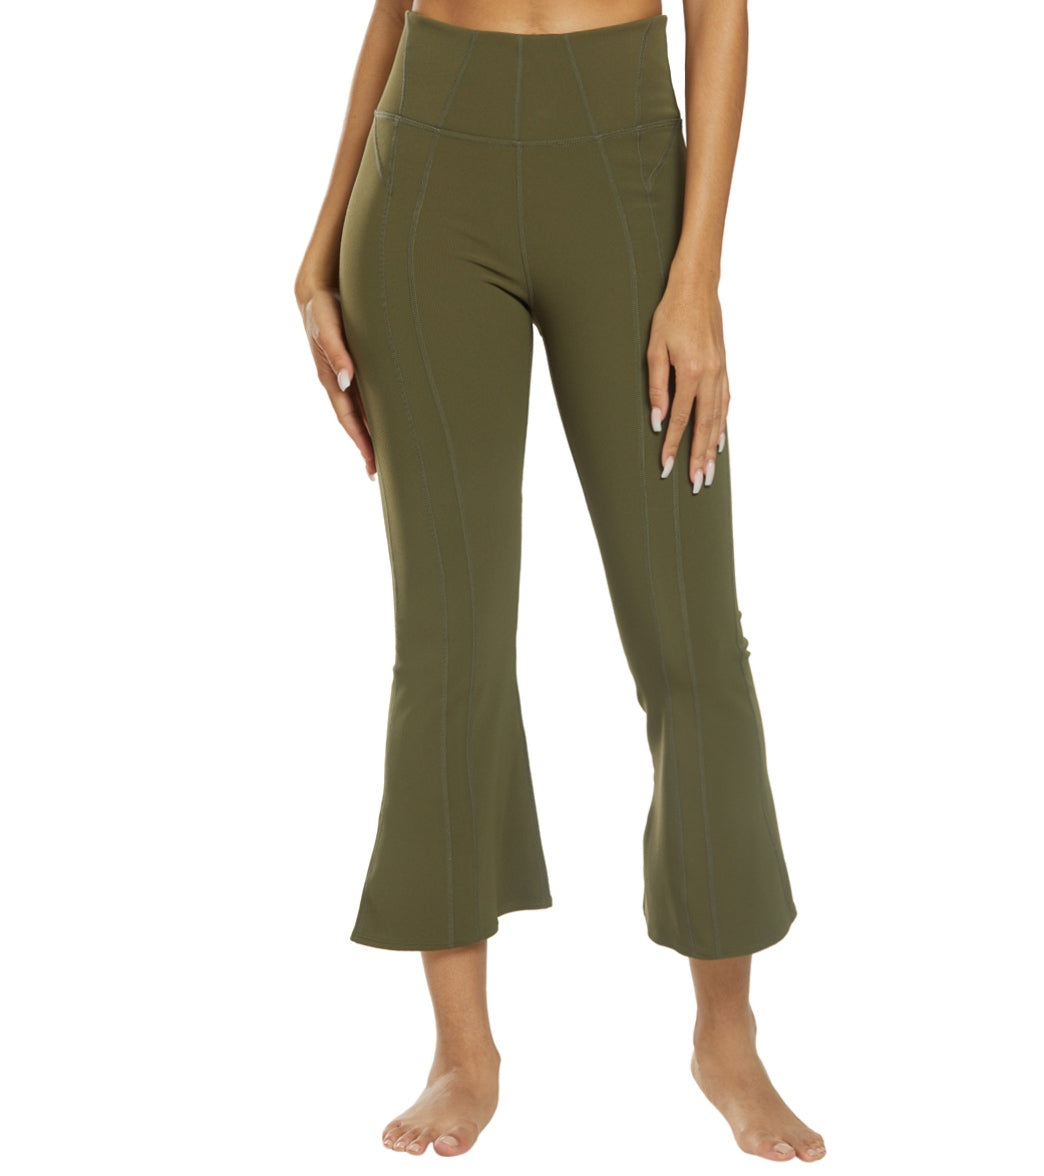 Free People Movement High Waisted Lyla Flare Pants - Army Spandex